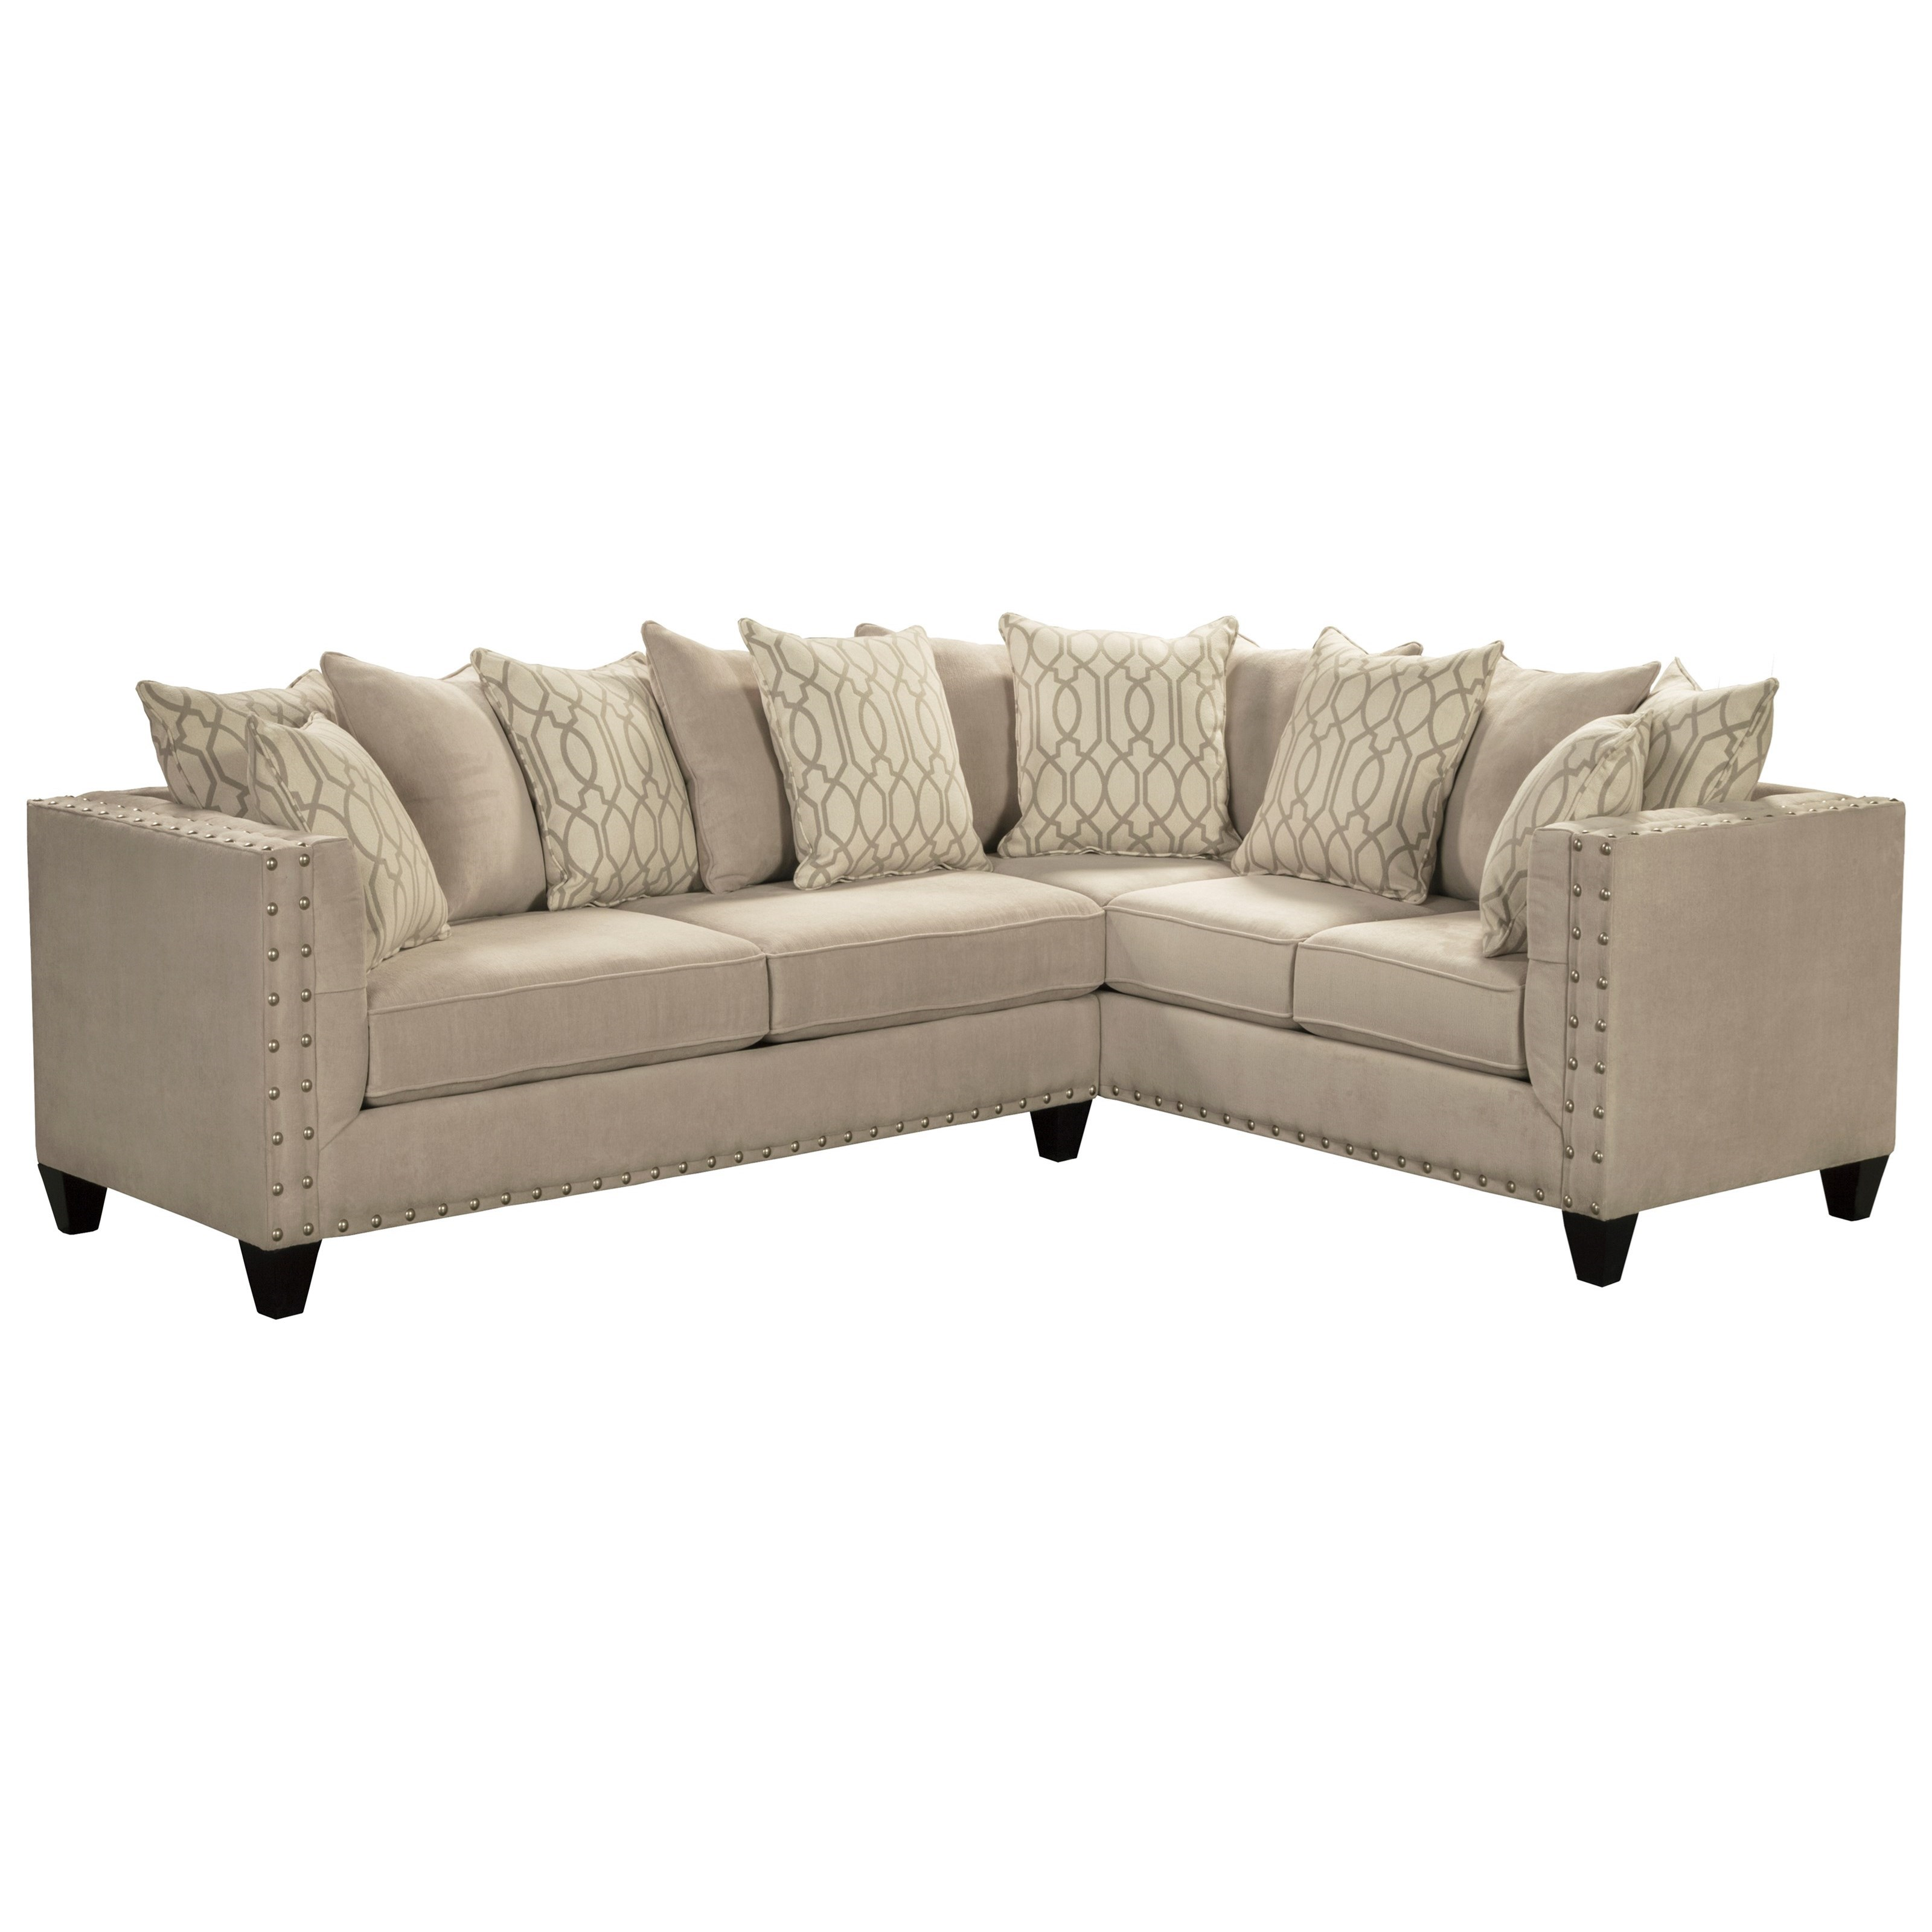 Del Sol Exclusive Roxanne by Robert Michael Upholstered Sectional Sofa - Item Number: ROX-LAFSOFA+RAFLOVESEAT-SMOKEOYSTER